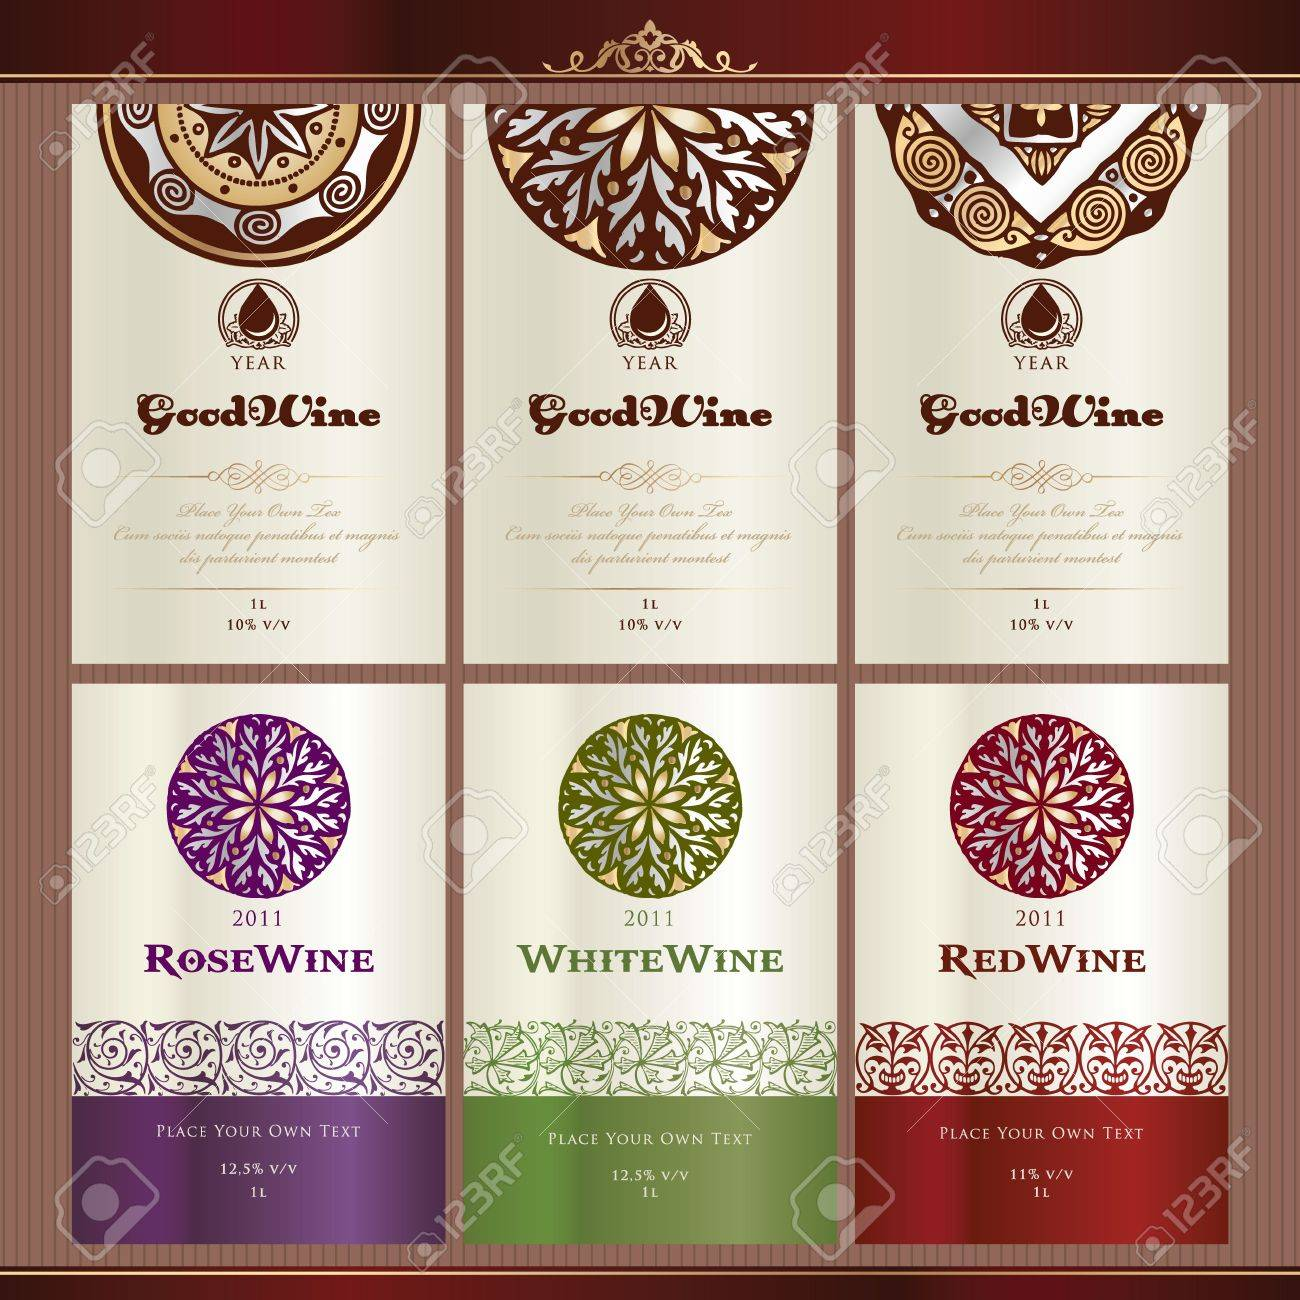 Free Wine Bottle Label Template rent payment receipt – Free Wine Label Template